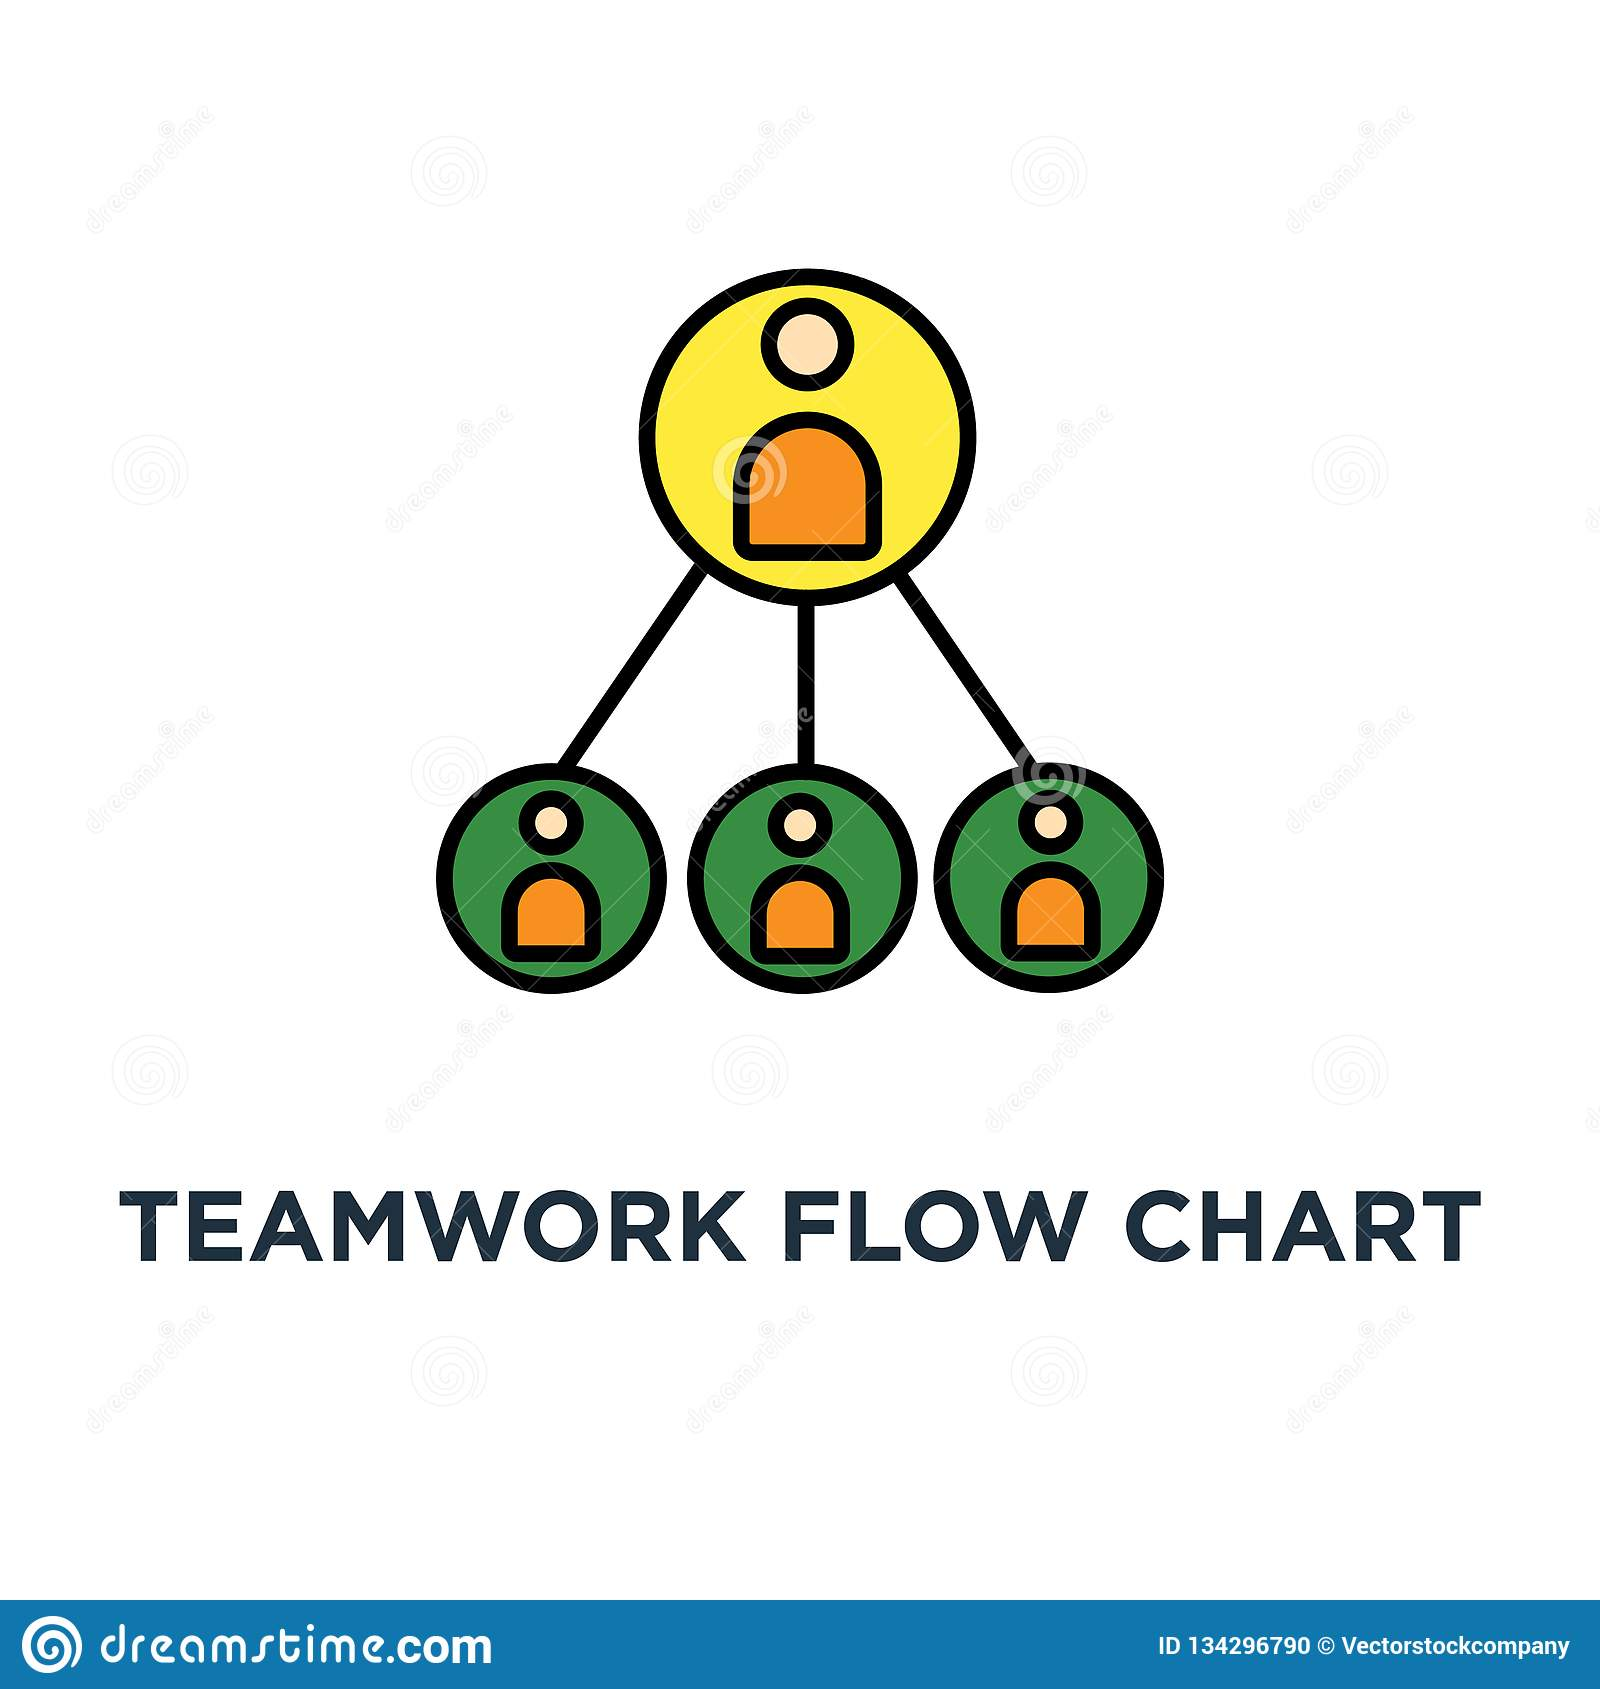 teamwork flow chart icon. business hierarchy or business team pyramid structure concept symbol design, company organization